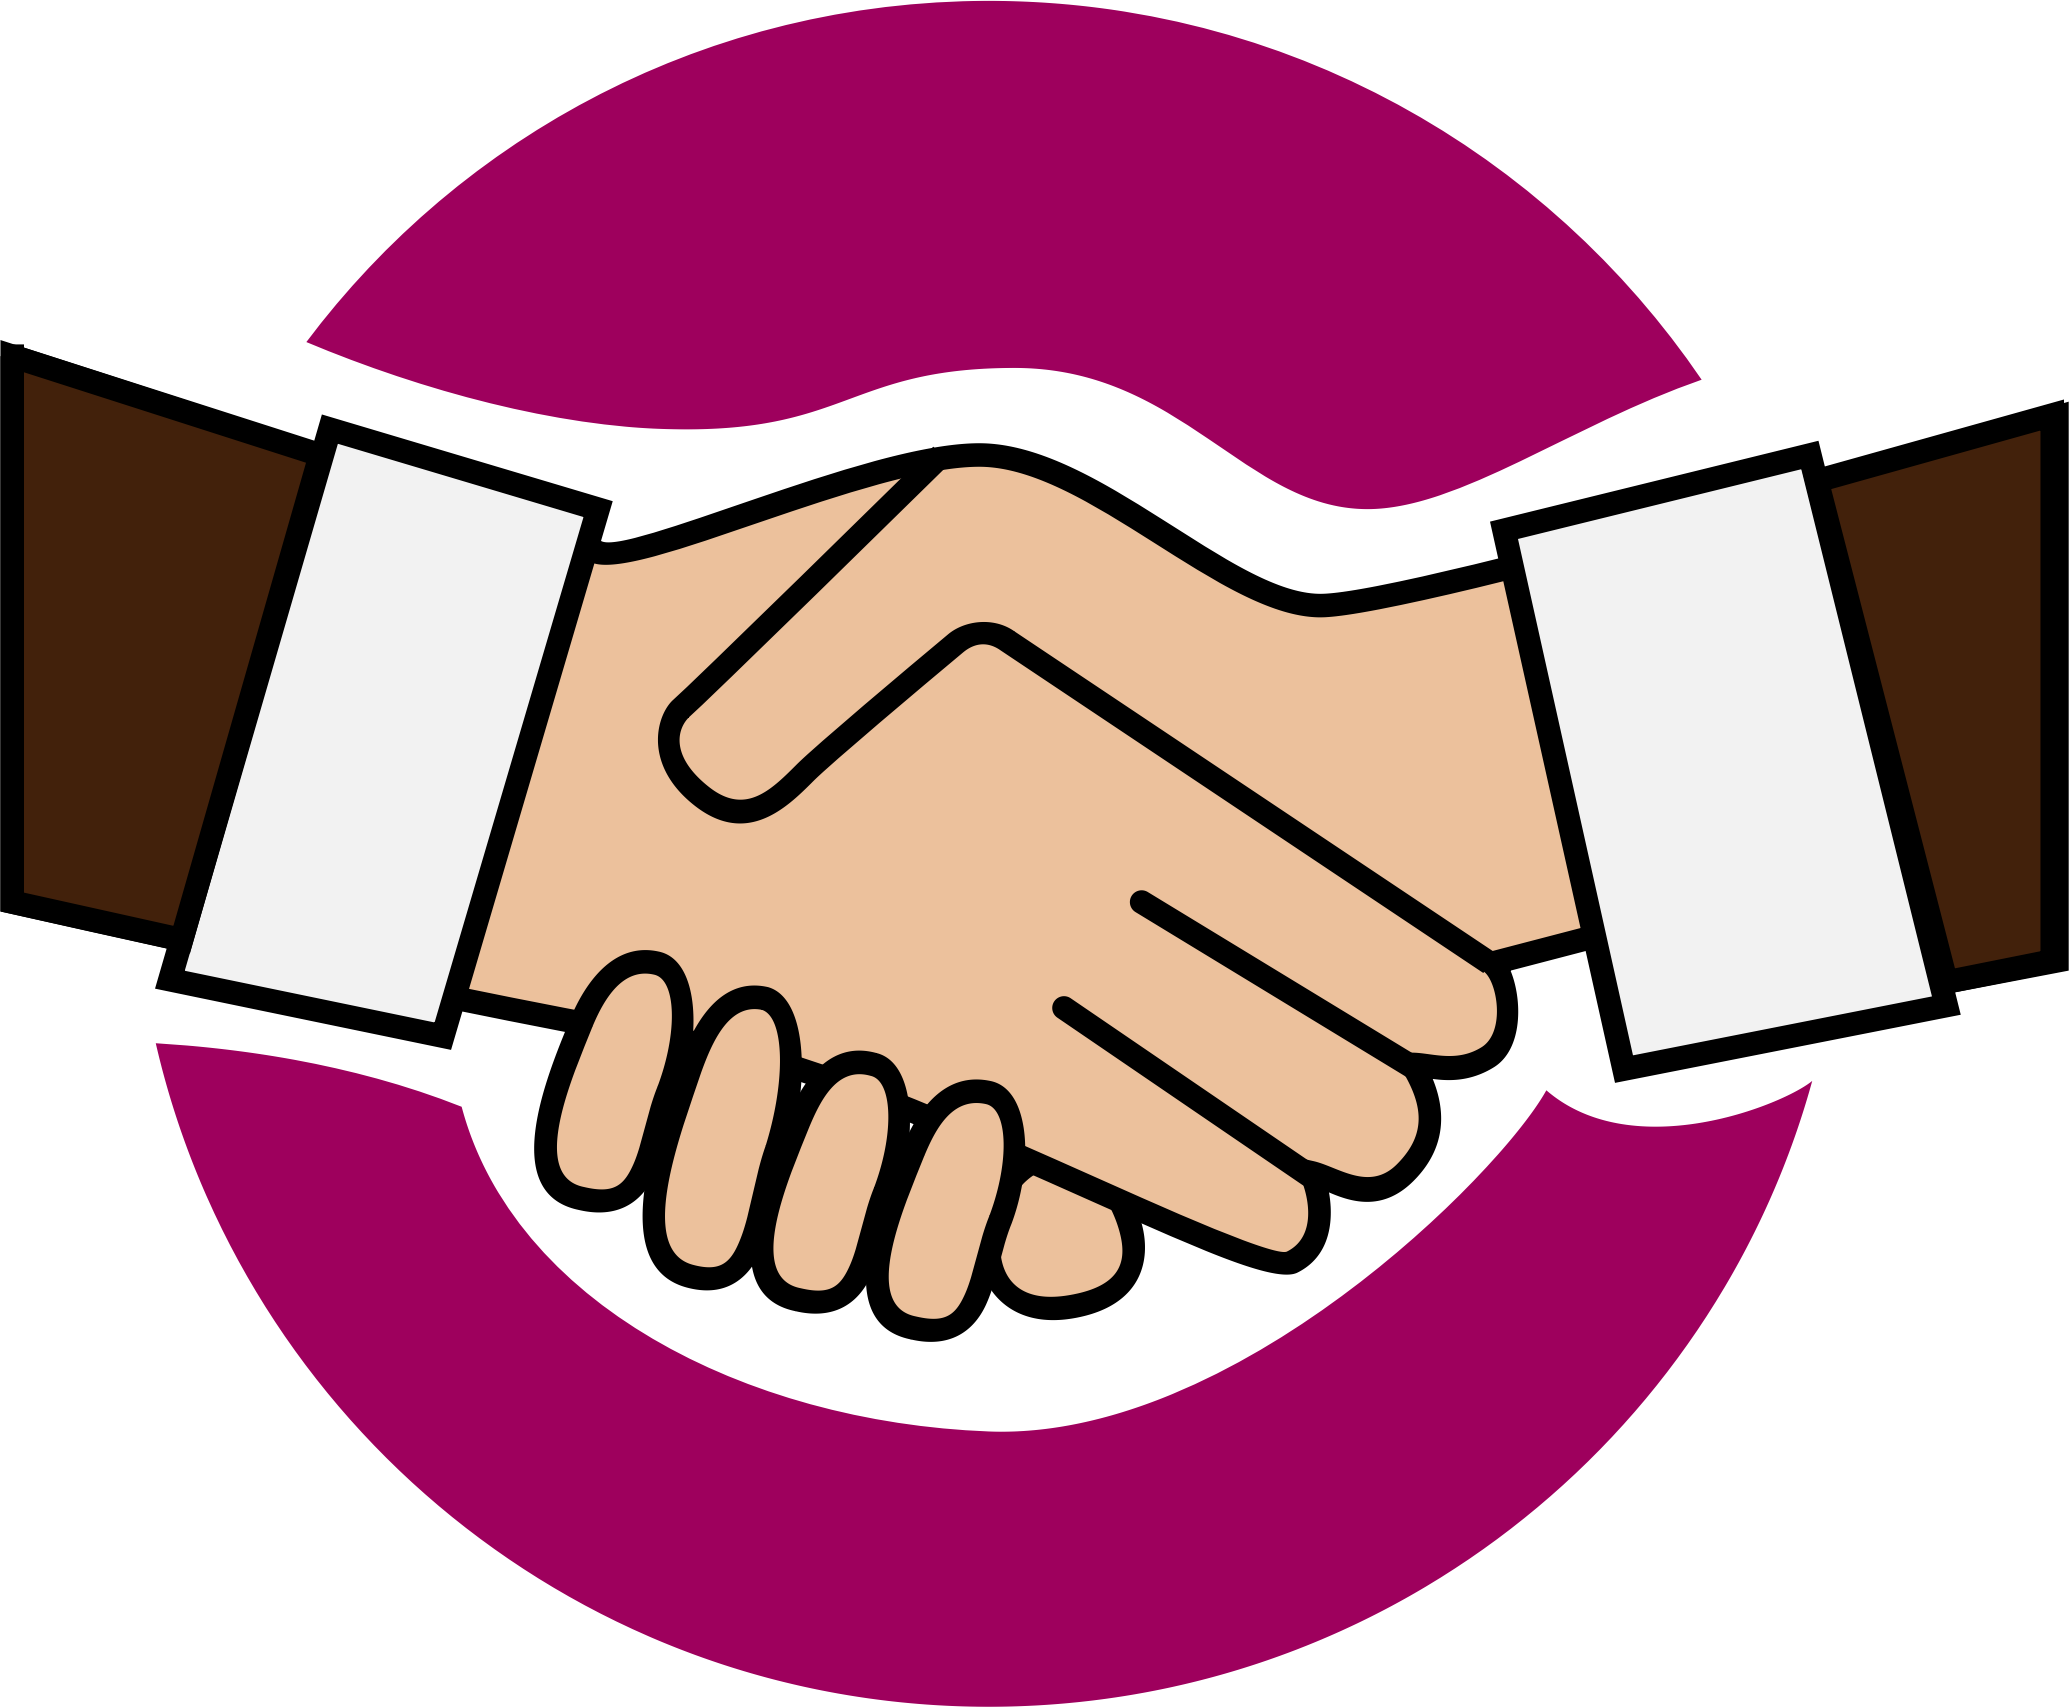 Handshake icon clipart picture black and white stock Clipart a handshake icon - Clipartable.com picture black and white stock